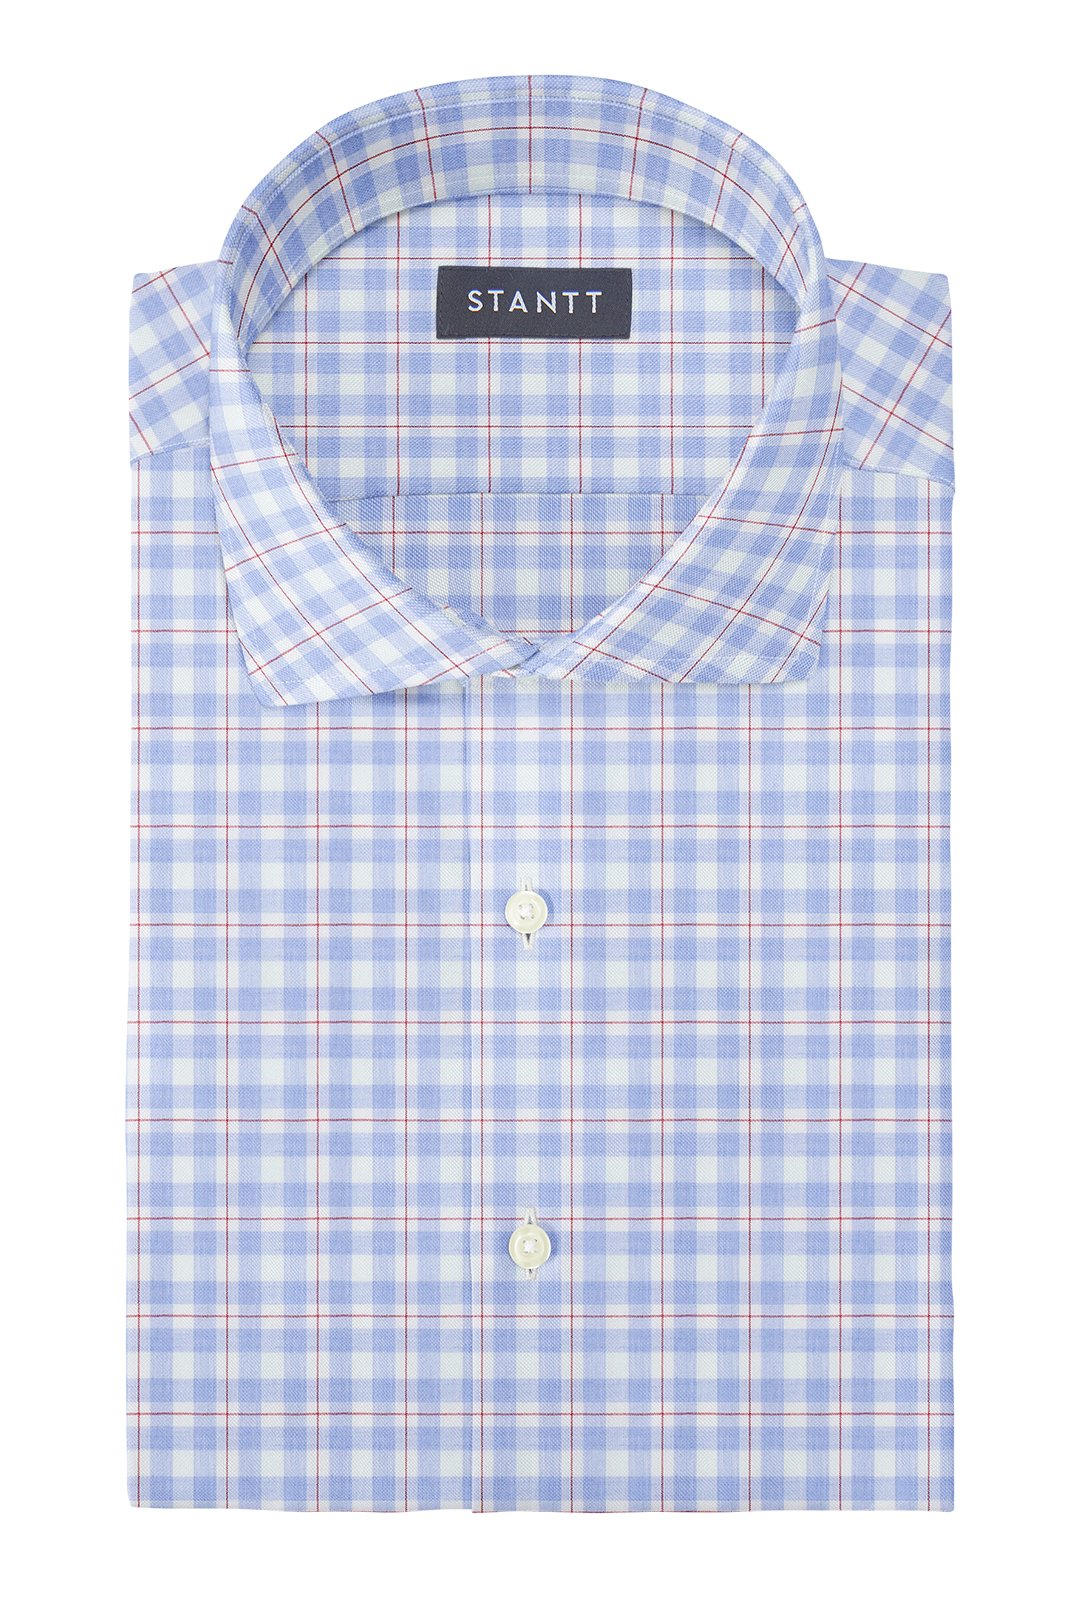 Light Blue and Red Windowpane: Cutaway Collar, French Cuff